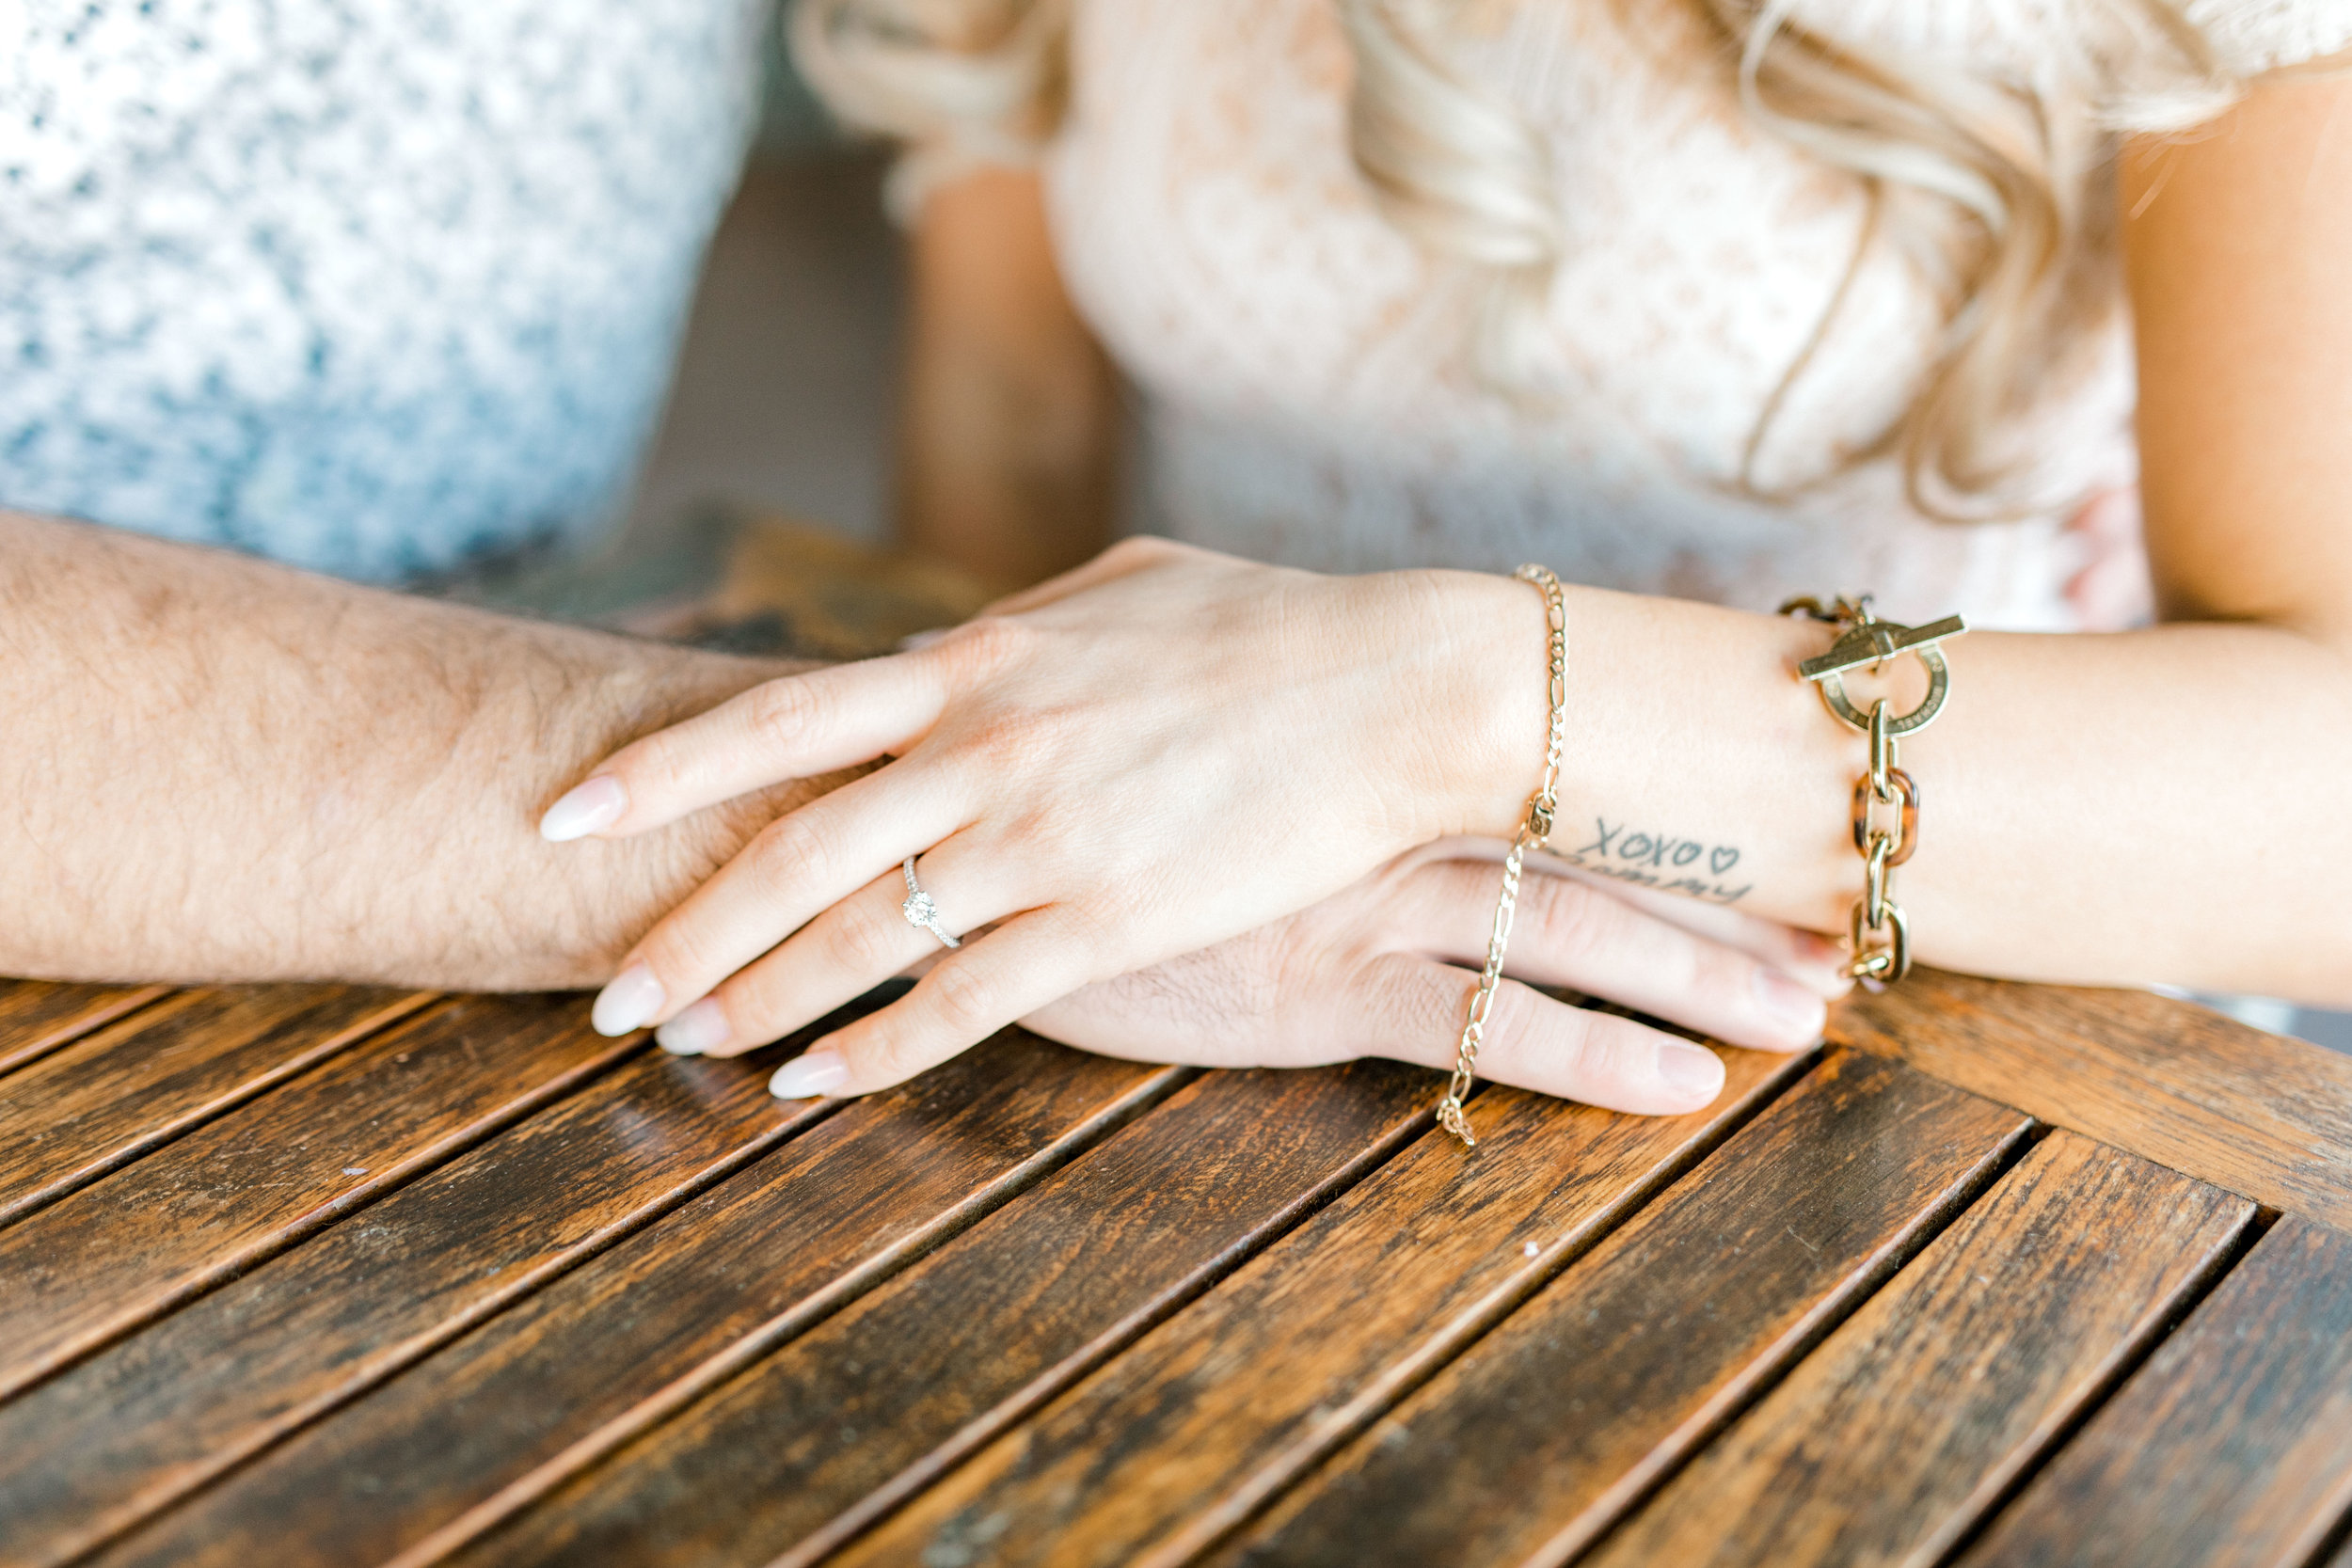 A simple and sweet engagement ring with a few fun gold accessories topped off Nikki's romantic fall engagement session look.